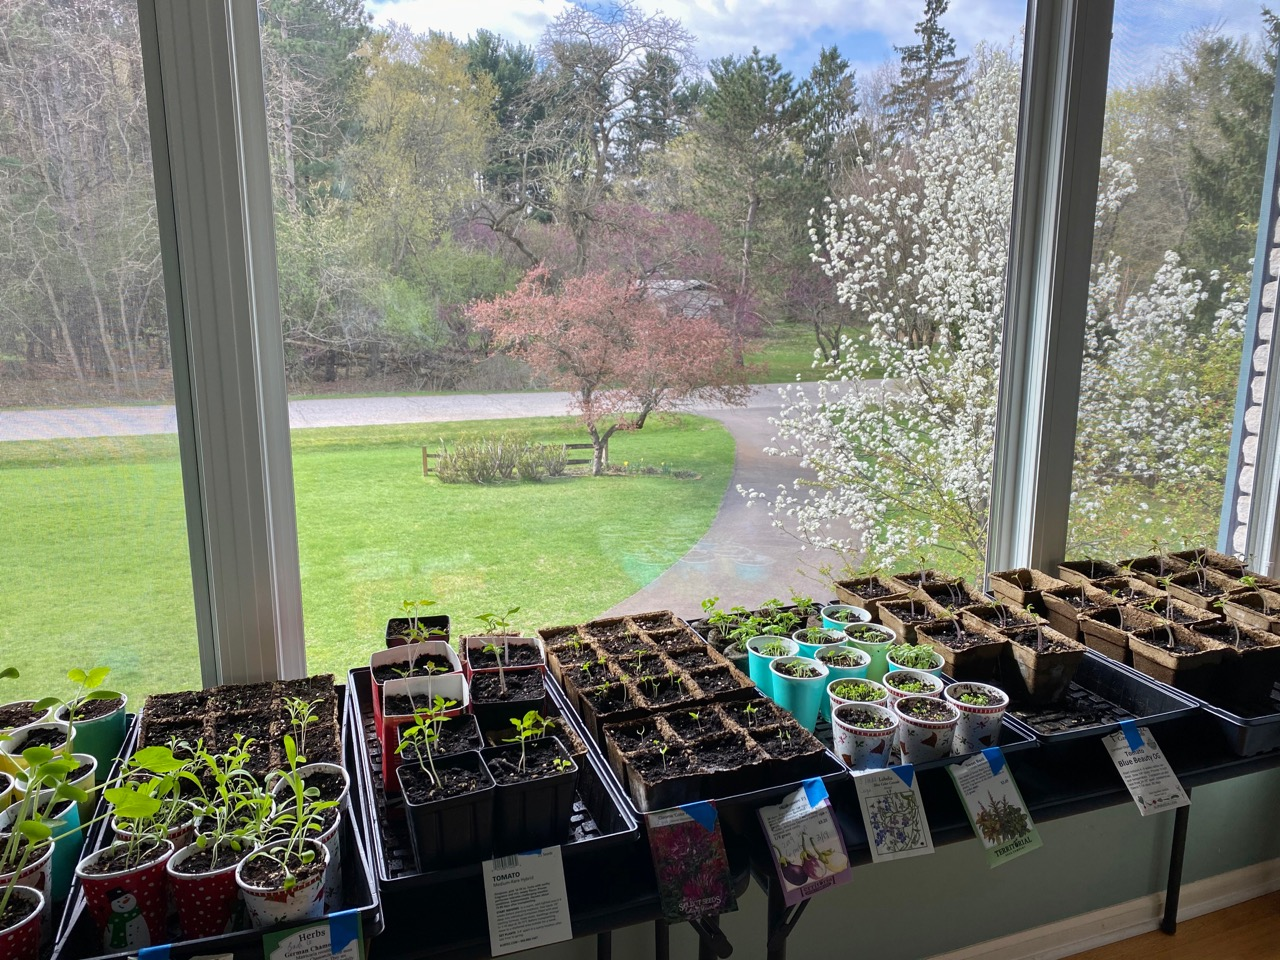 seedlings in window